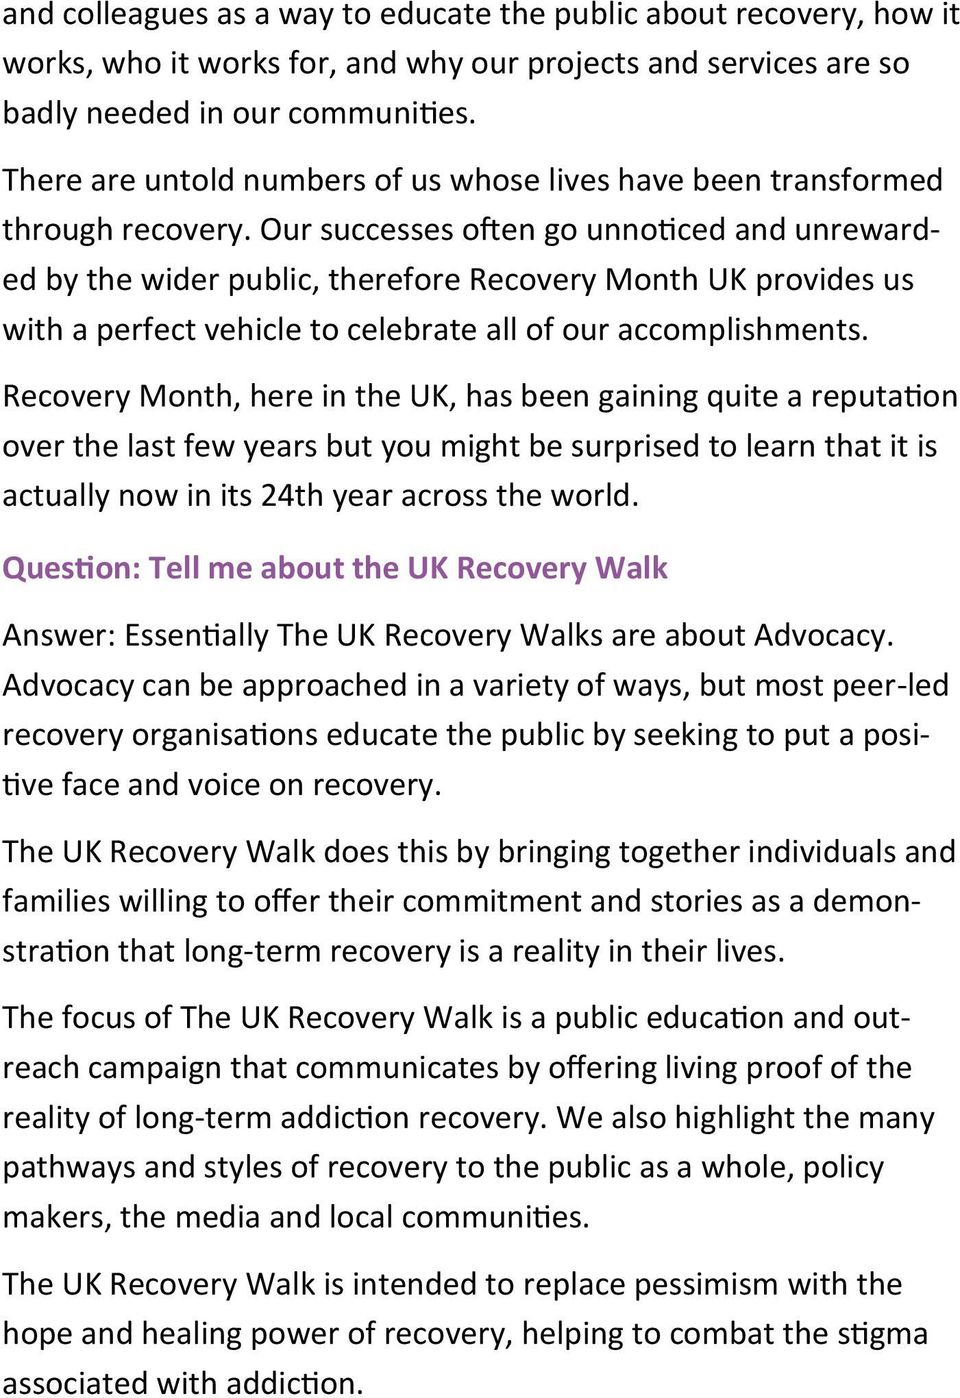 Our successes often go unnoticed and unrewarded by the wider public, therefore Recovery Month UK provides us with a perfect vehicle to celebrate all of our accomplishments.